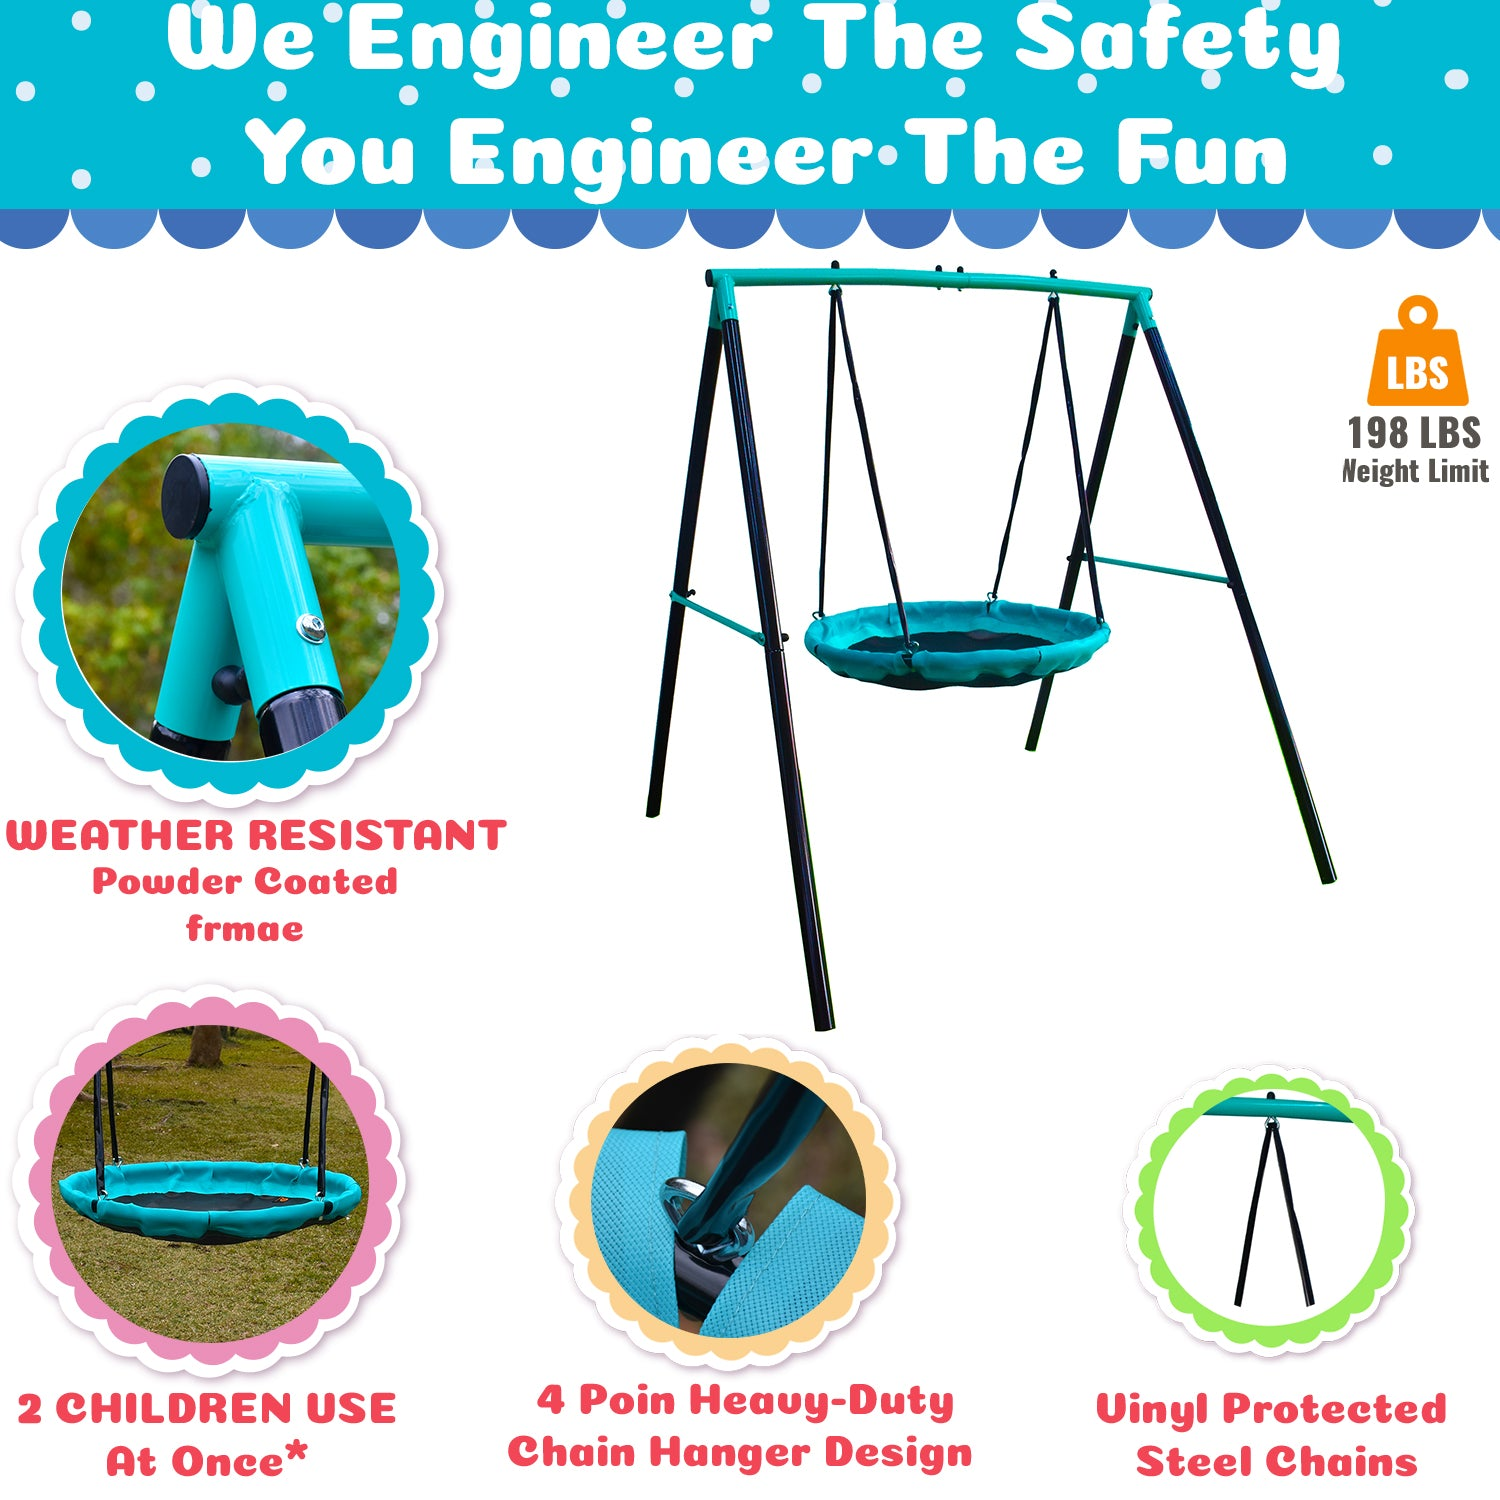 UFO/Flying Saucer-Magic Carpet A- Frame Metal Swing Set- for 1 or 2-Kids/Toddlers